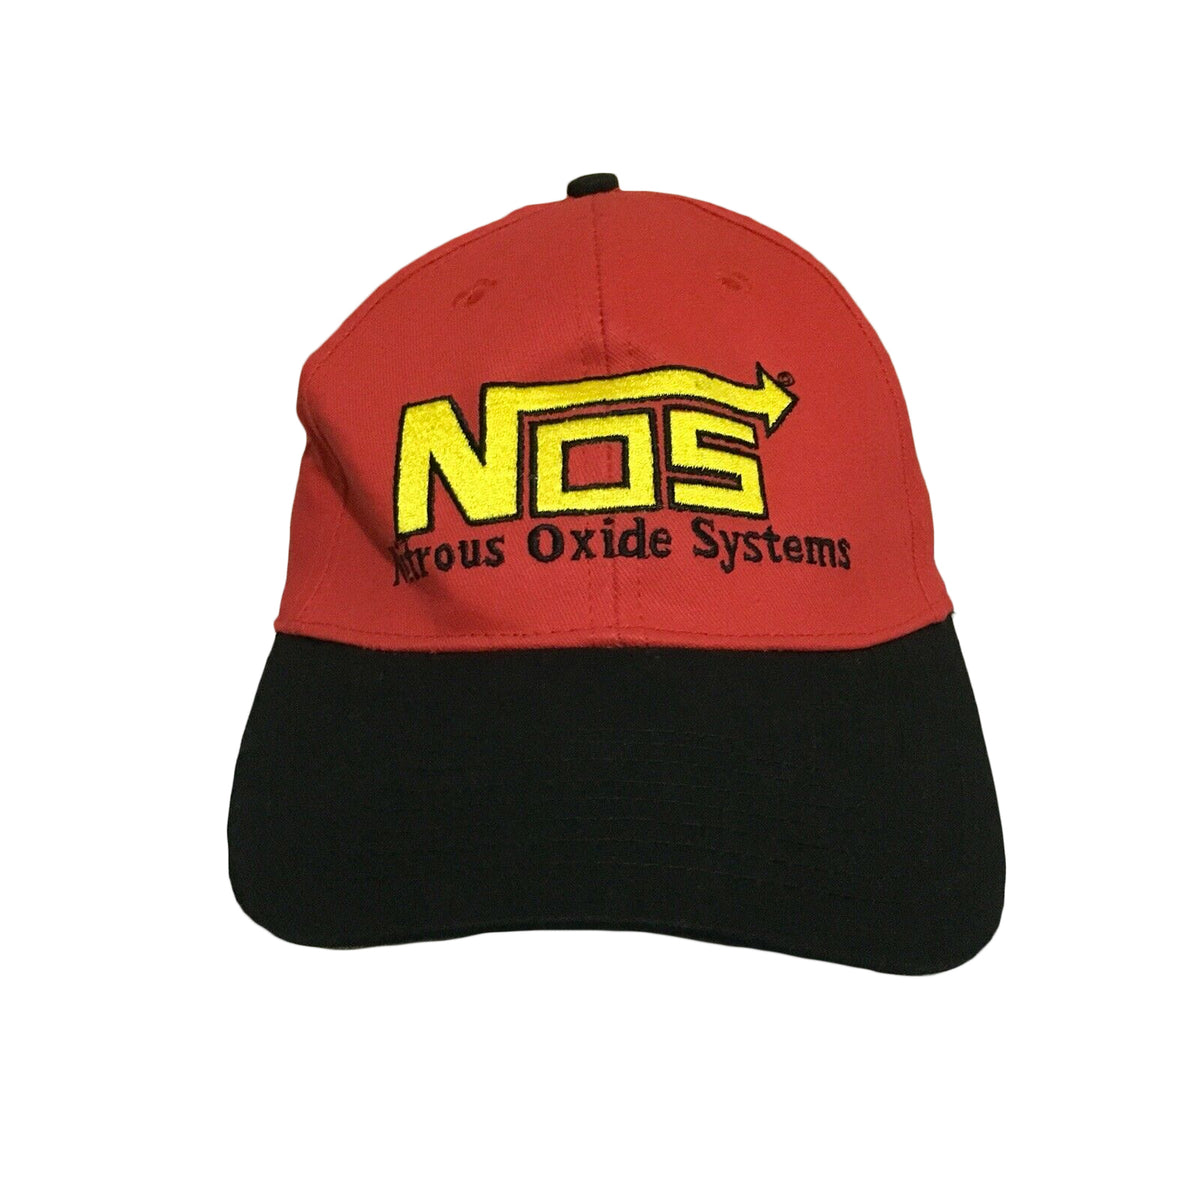 NOS Nitrous Oxide Systems Racing Vintage Strapback Cap